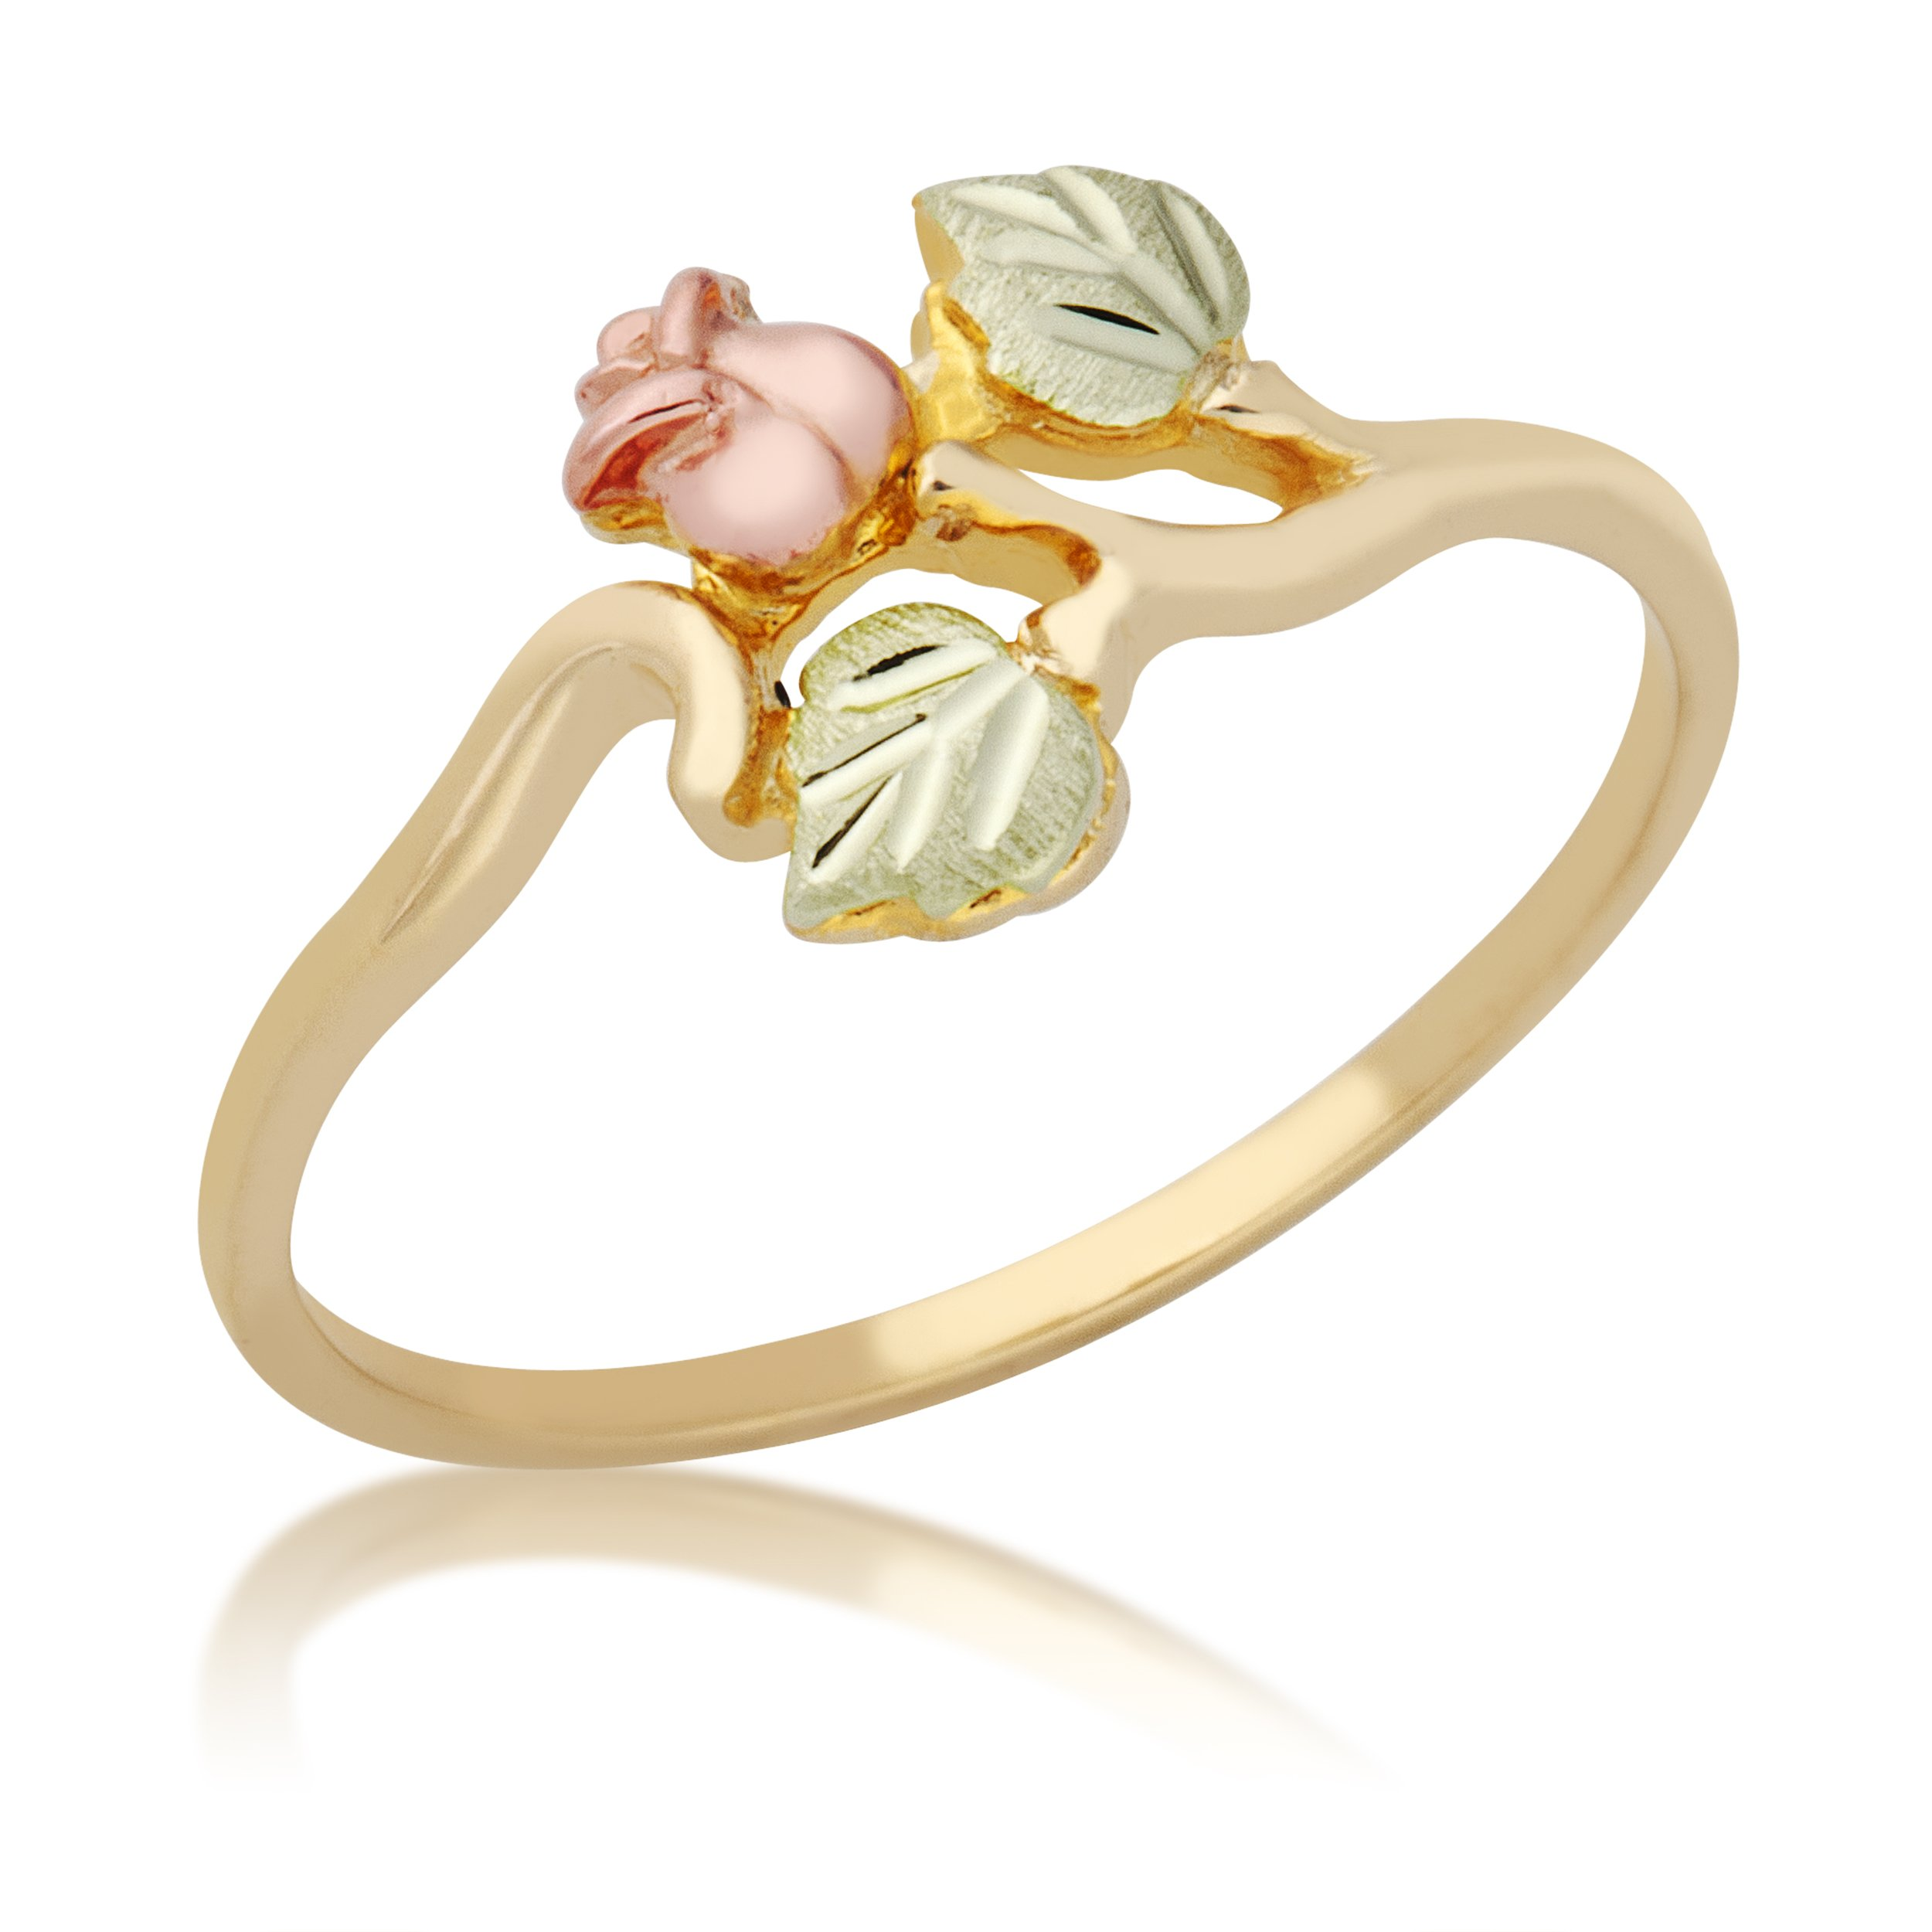 Rosebud Bypass Ring, 10k Yellow Gold, 12k Pink and Green Gold Black Hills Gold Motif, Size 7.5